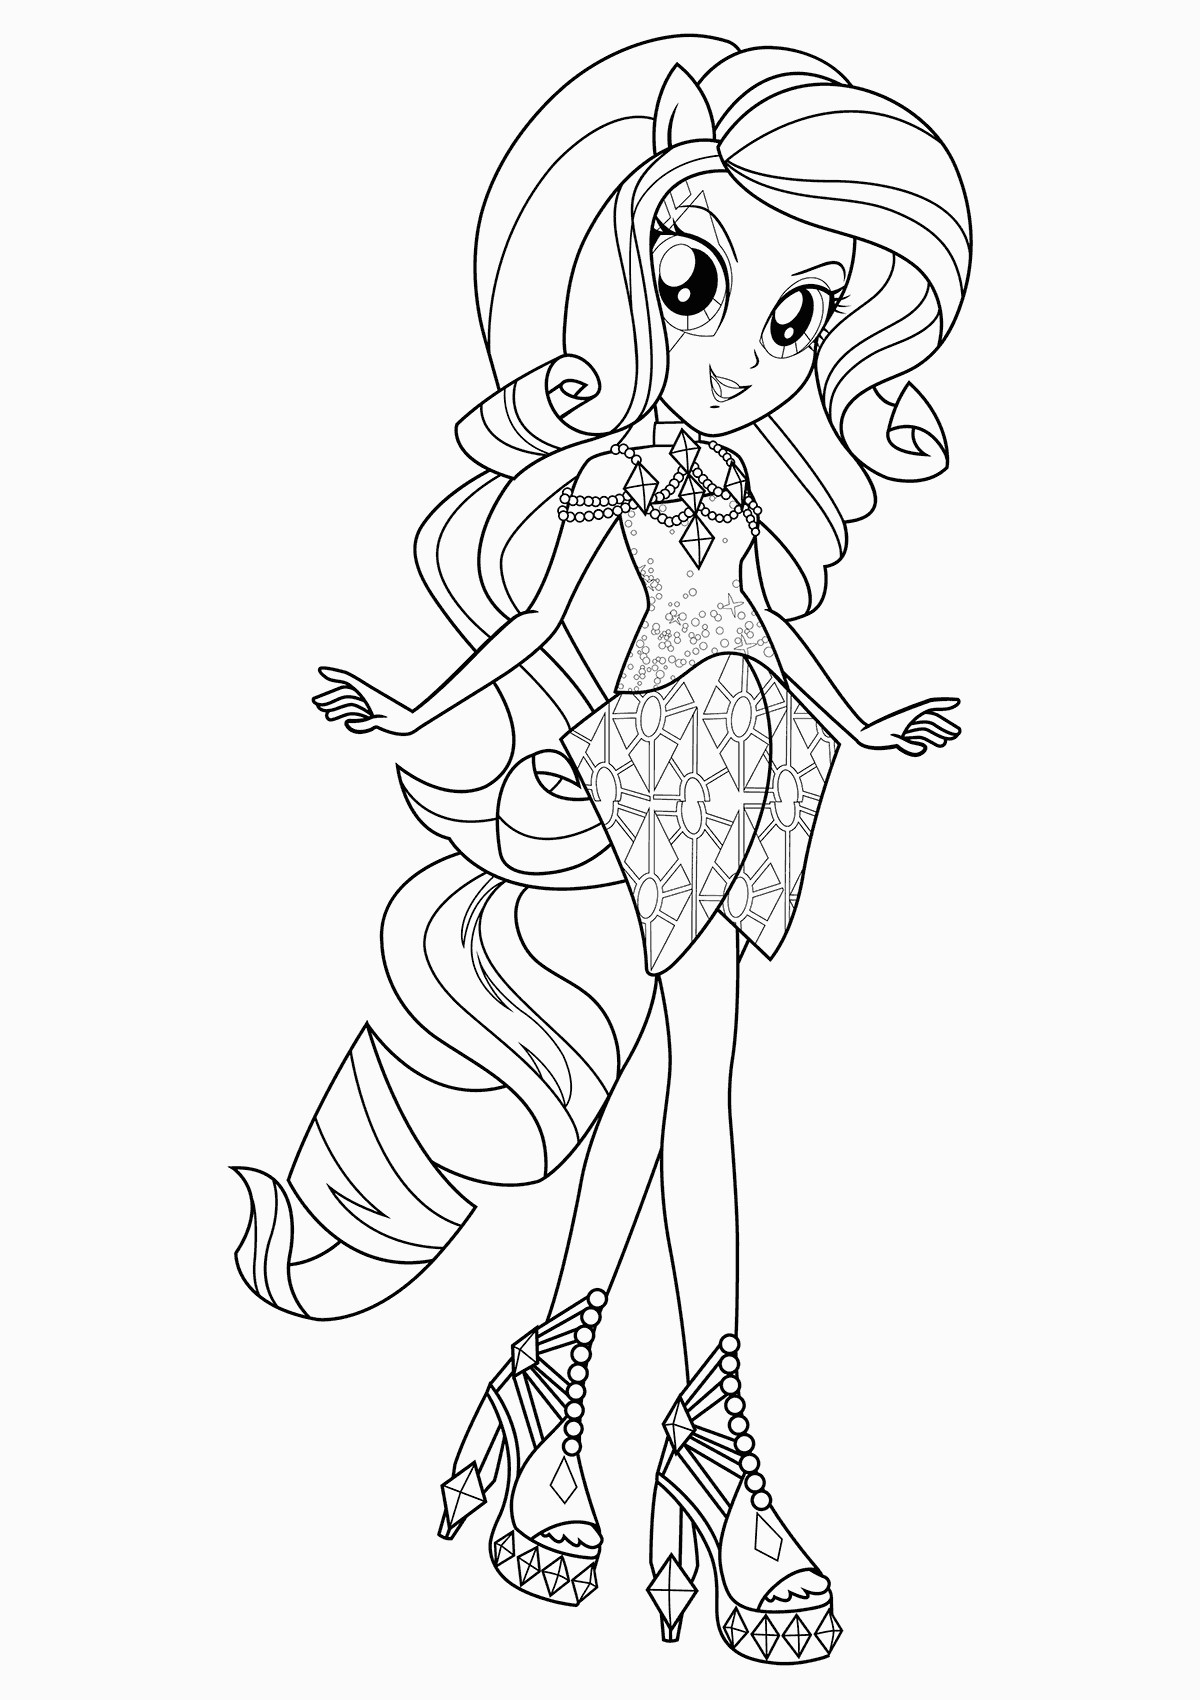 Coloriage My Little Pony Equestria Girl à Imprimer Equestria Girls Coloring Pages Best Coloring Pages for Kids